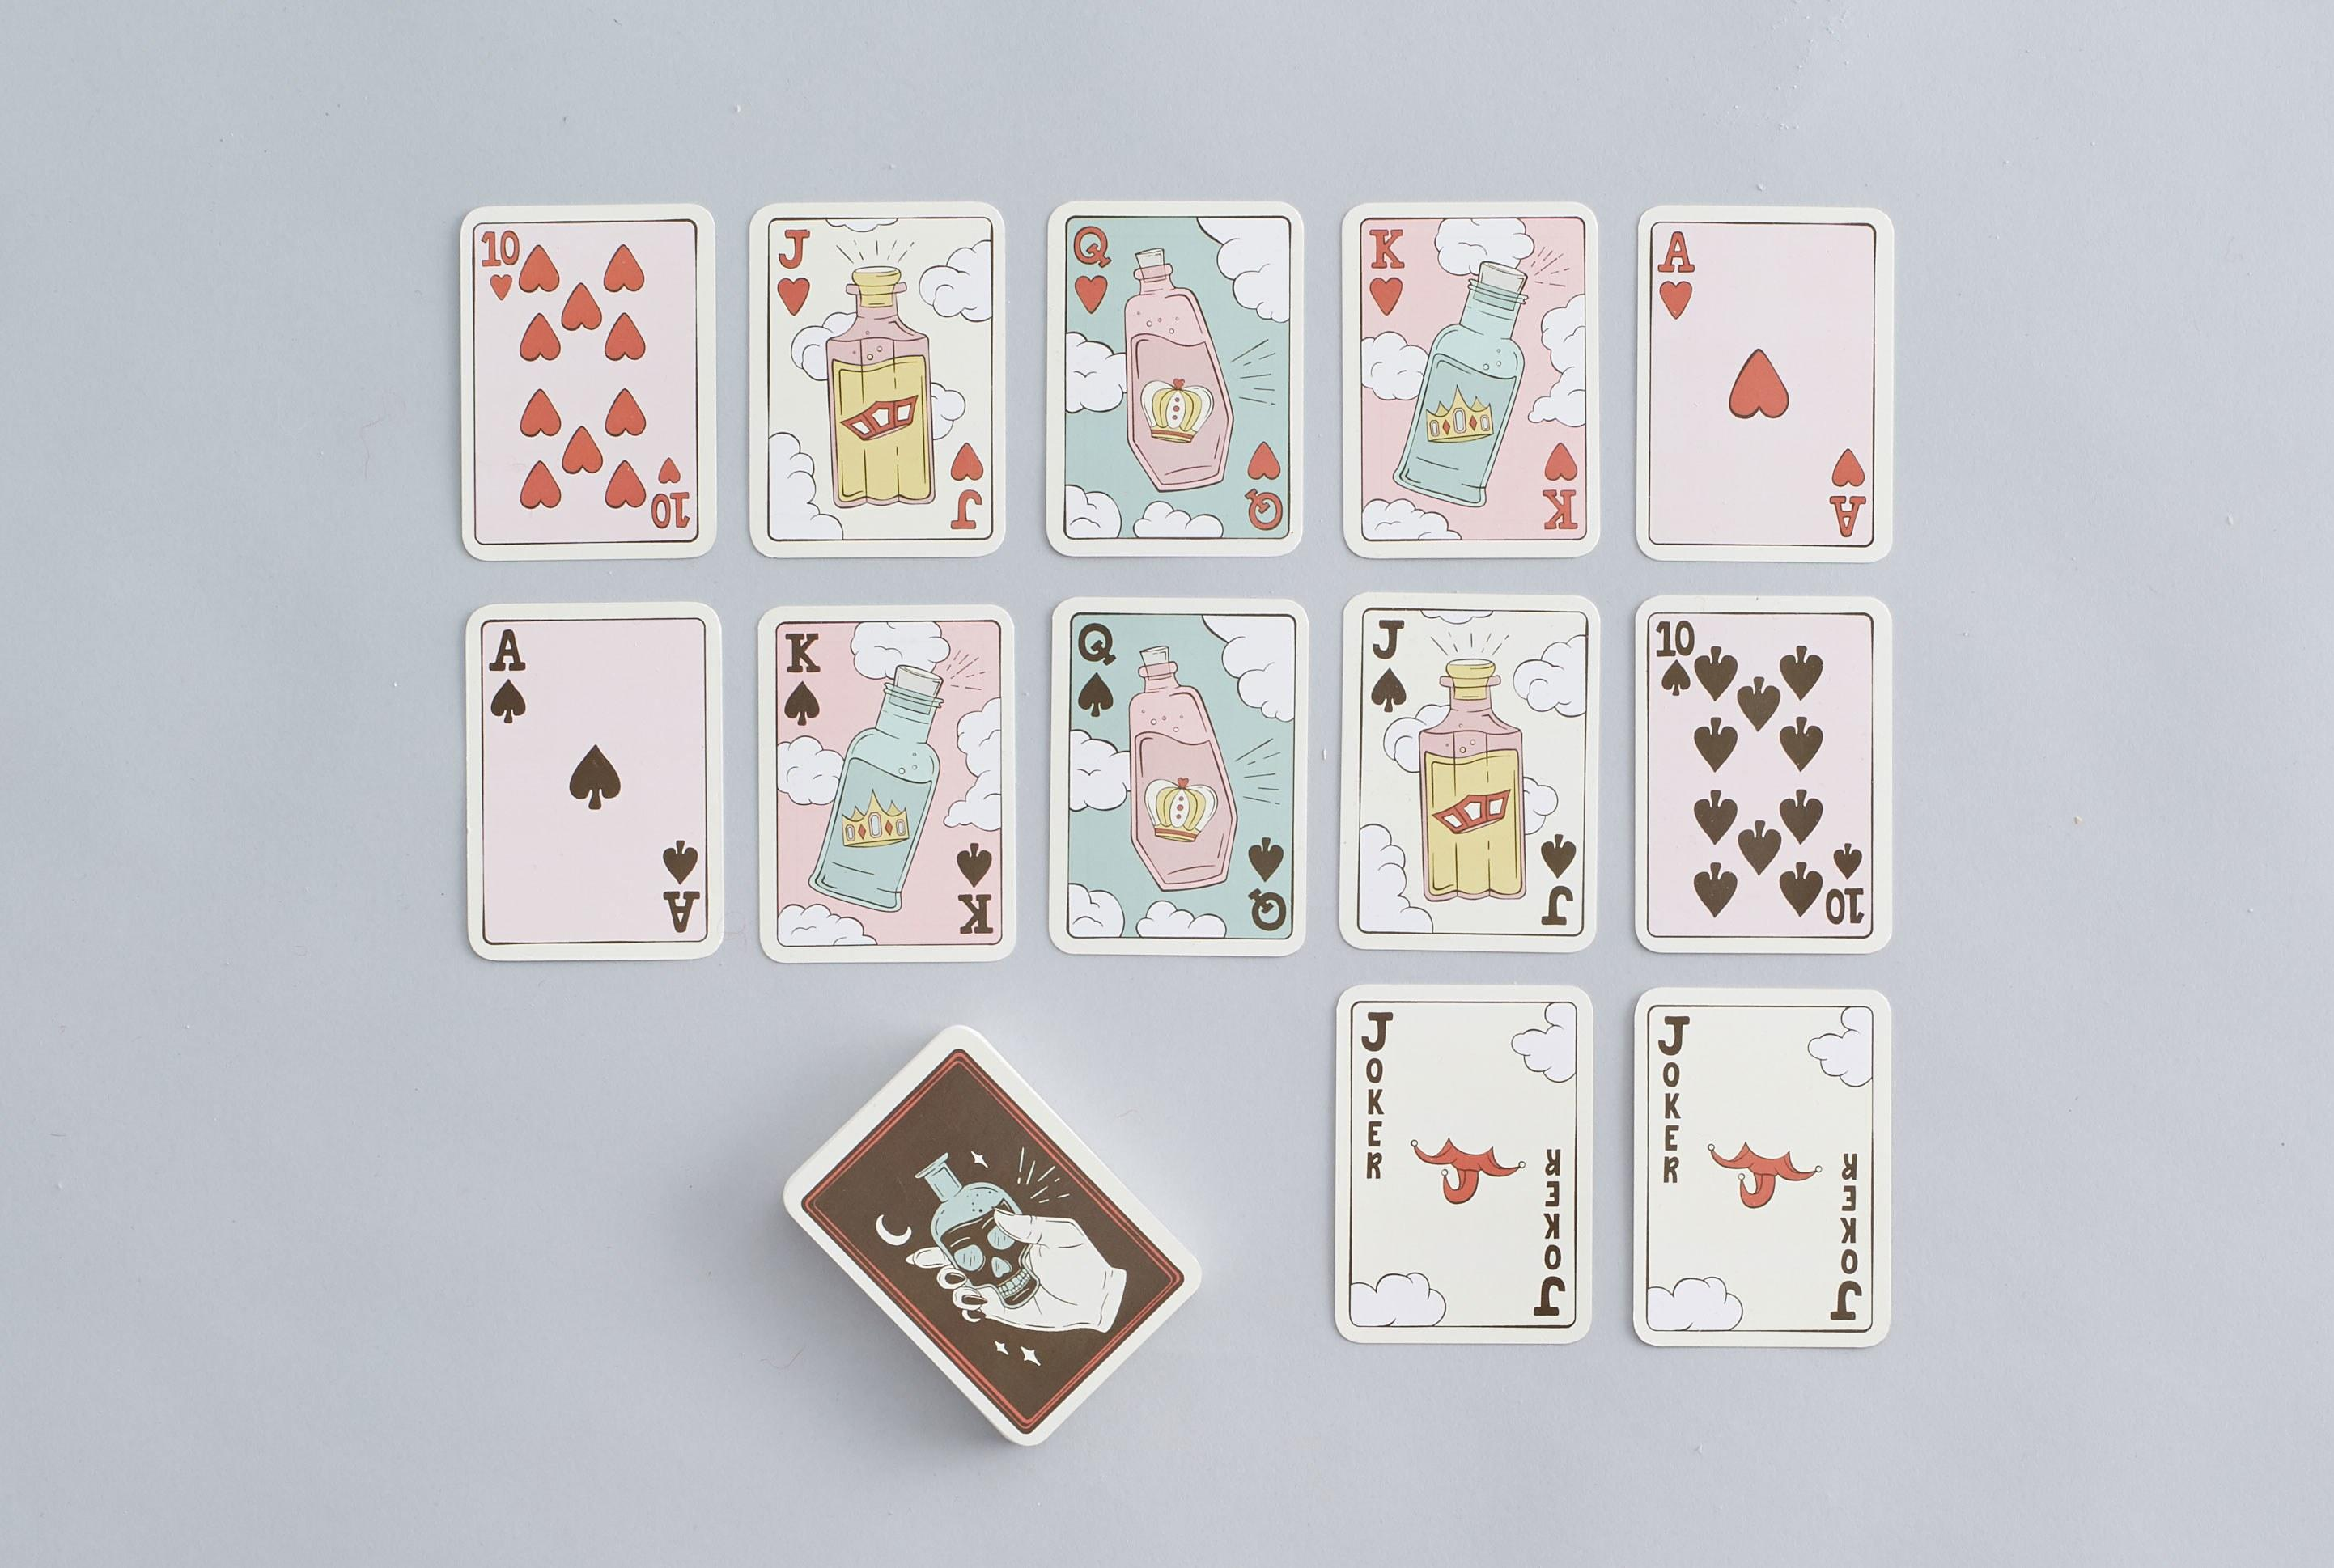 """Gin rummy—but with actually drinks on the cards, please.<br> <a href=""""https://society6.com/product/playing-cards-poison-bottle-deck"""" rel=""""nofollow noopener"""" target=""""_blank"""" data-ylk=""""slk:SHOP NOW"""" class=""""link rapid-noclick-resp"""">SHOP NOW</a>: Poison Bottle Deck by SagePizza Playing Cards, $15"""